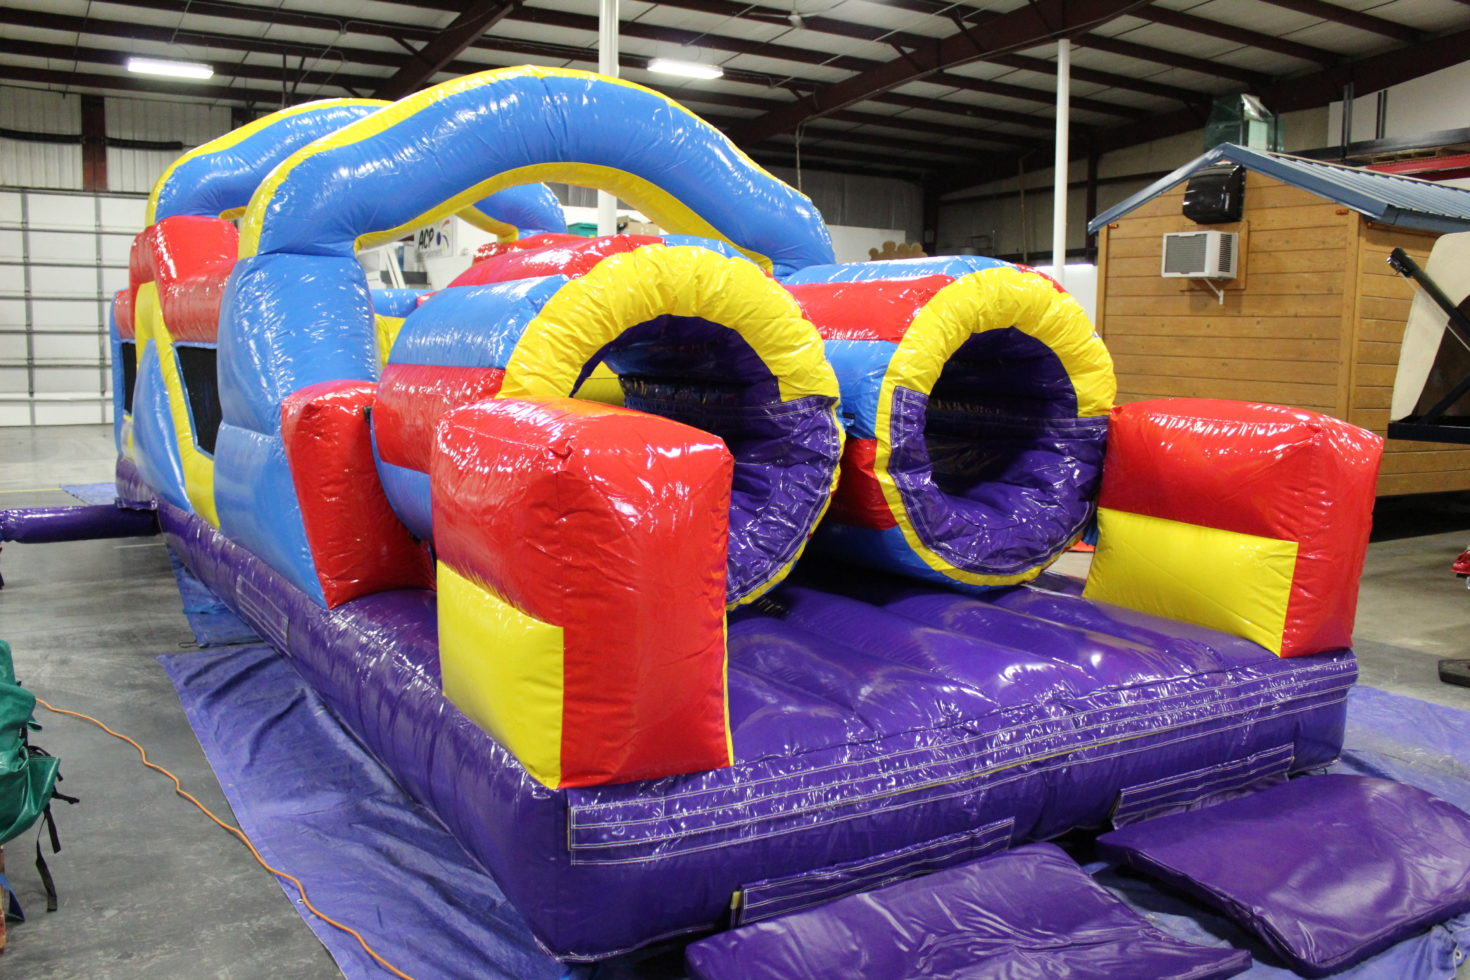 33' inflatable obstacle course ending